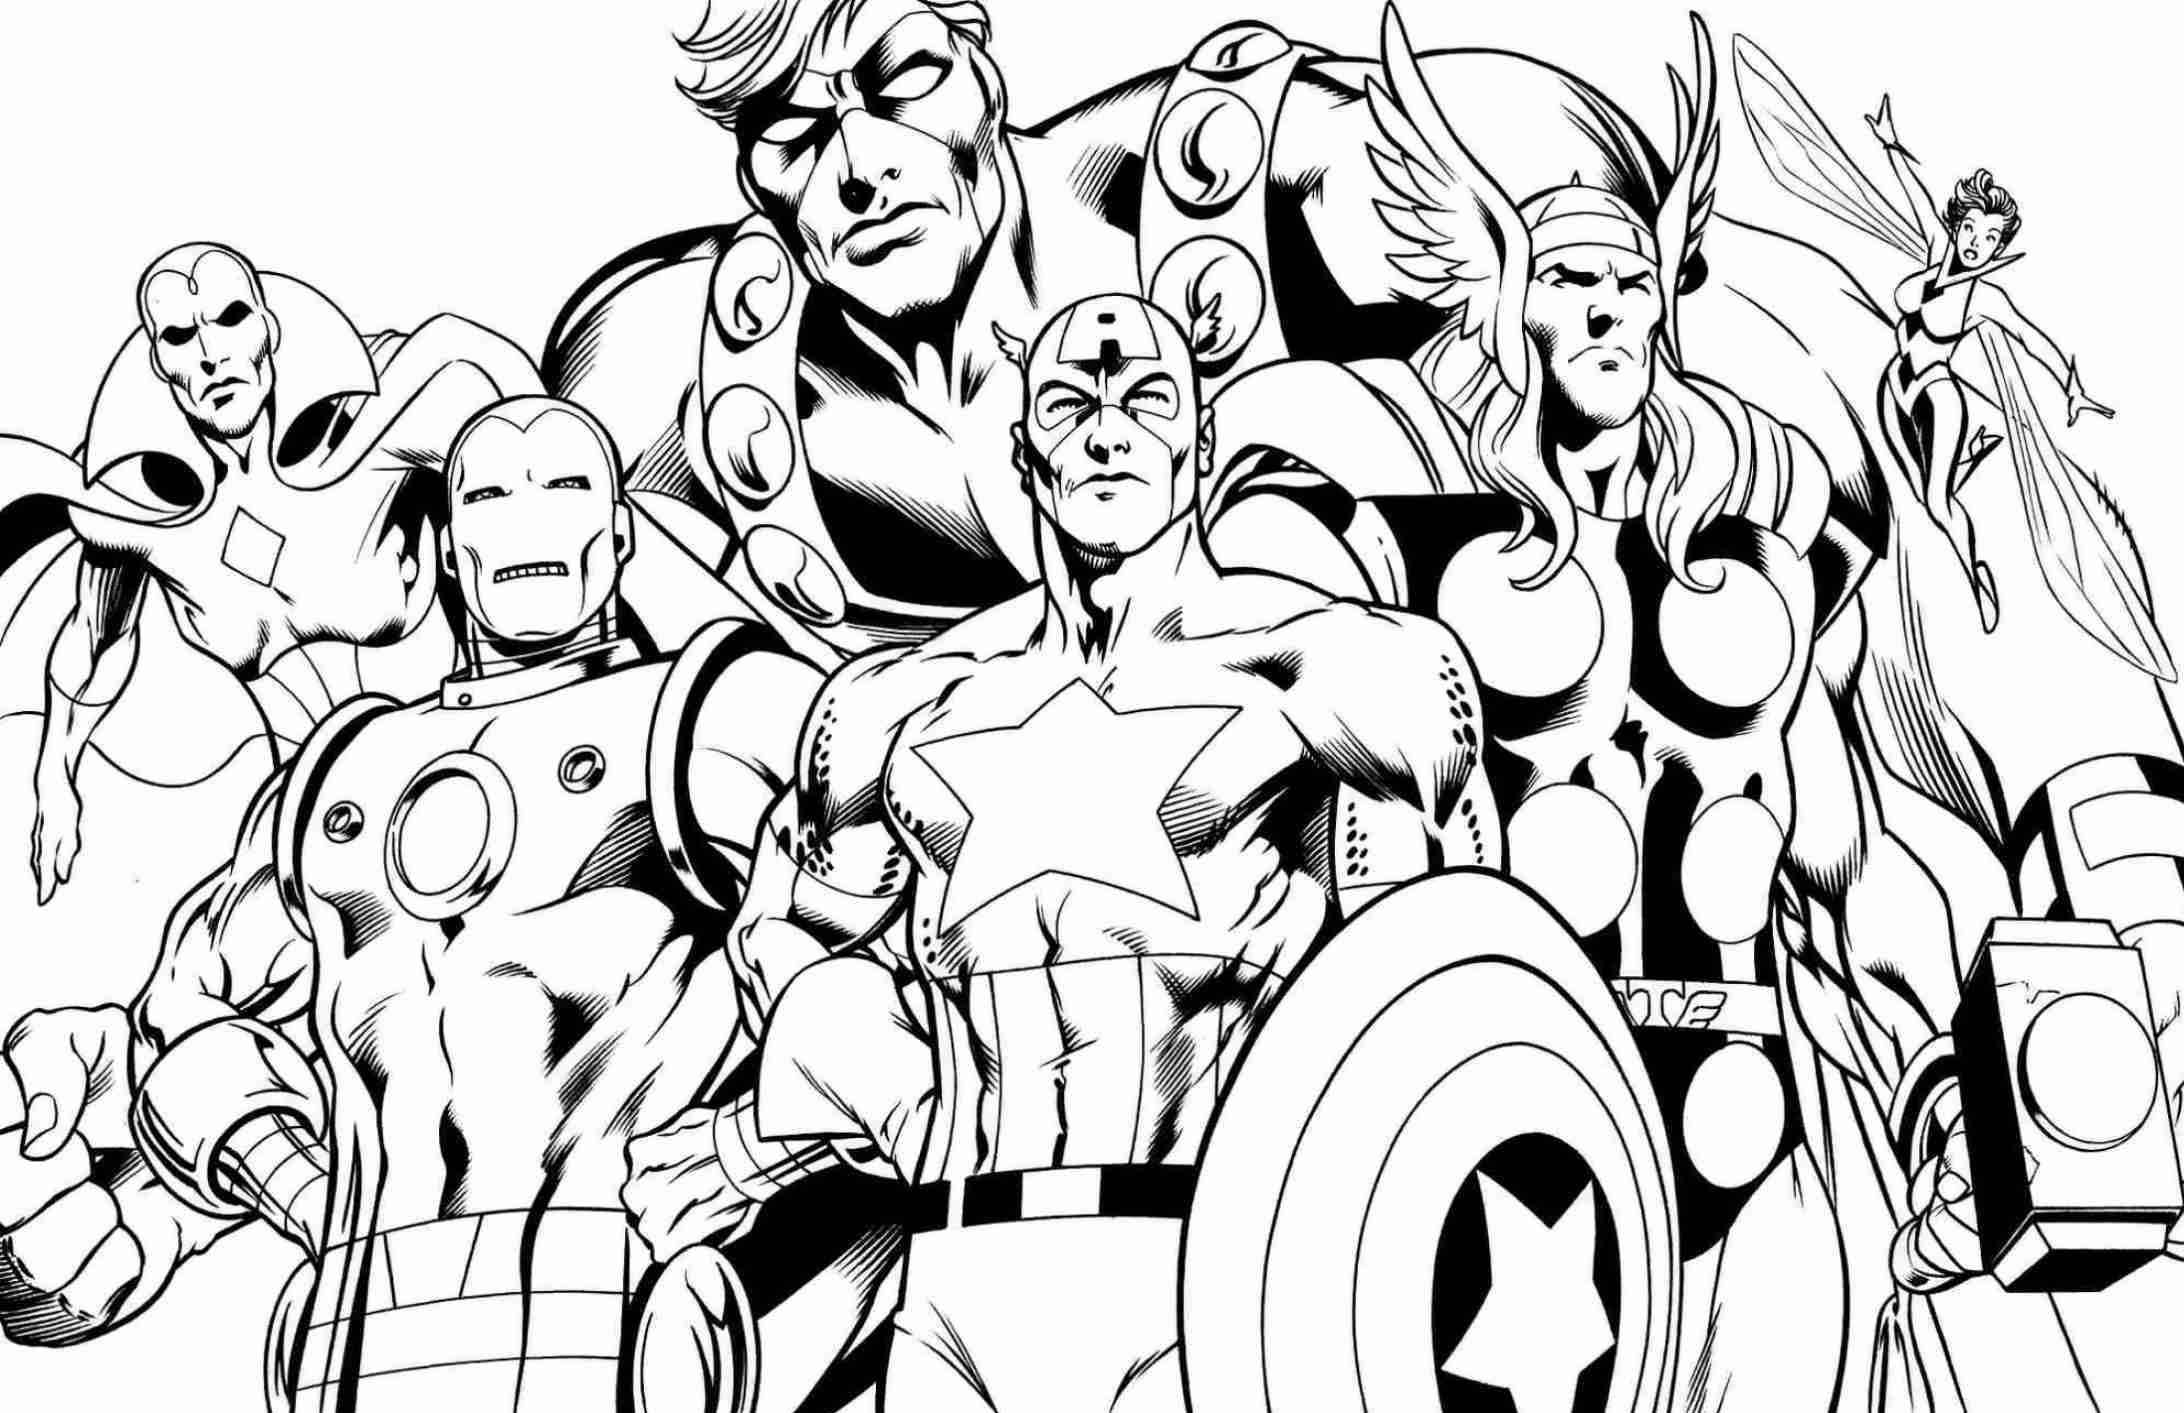 coloring picture avengers avengers coloring pages to download and print for free picture coloring avengers